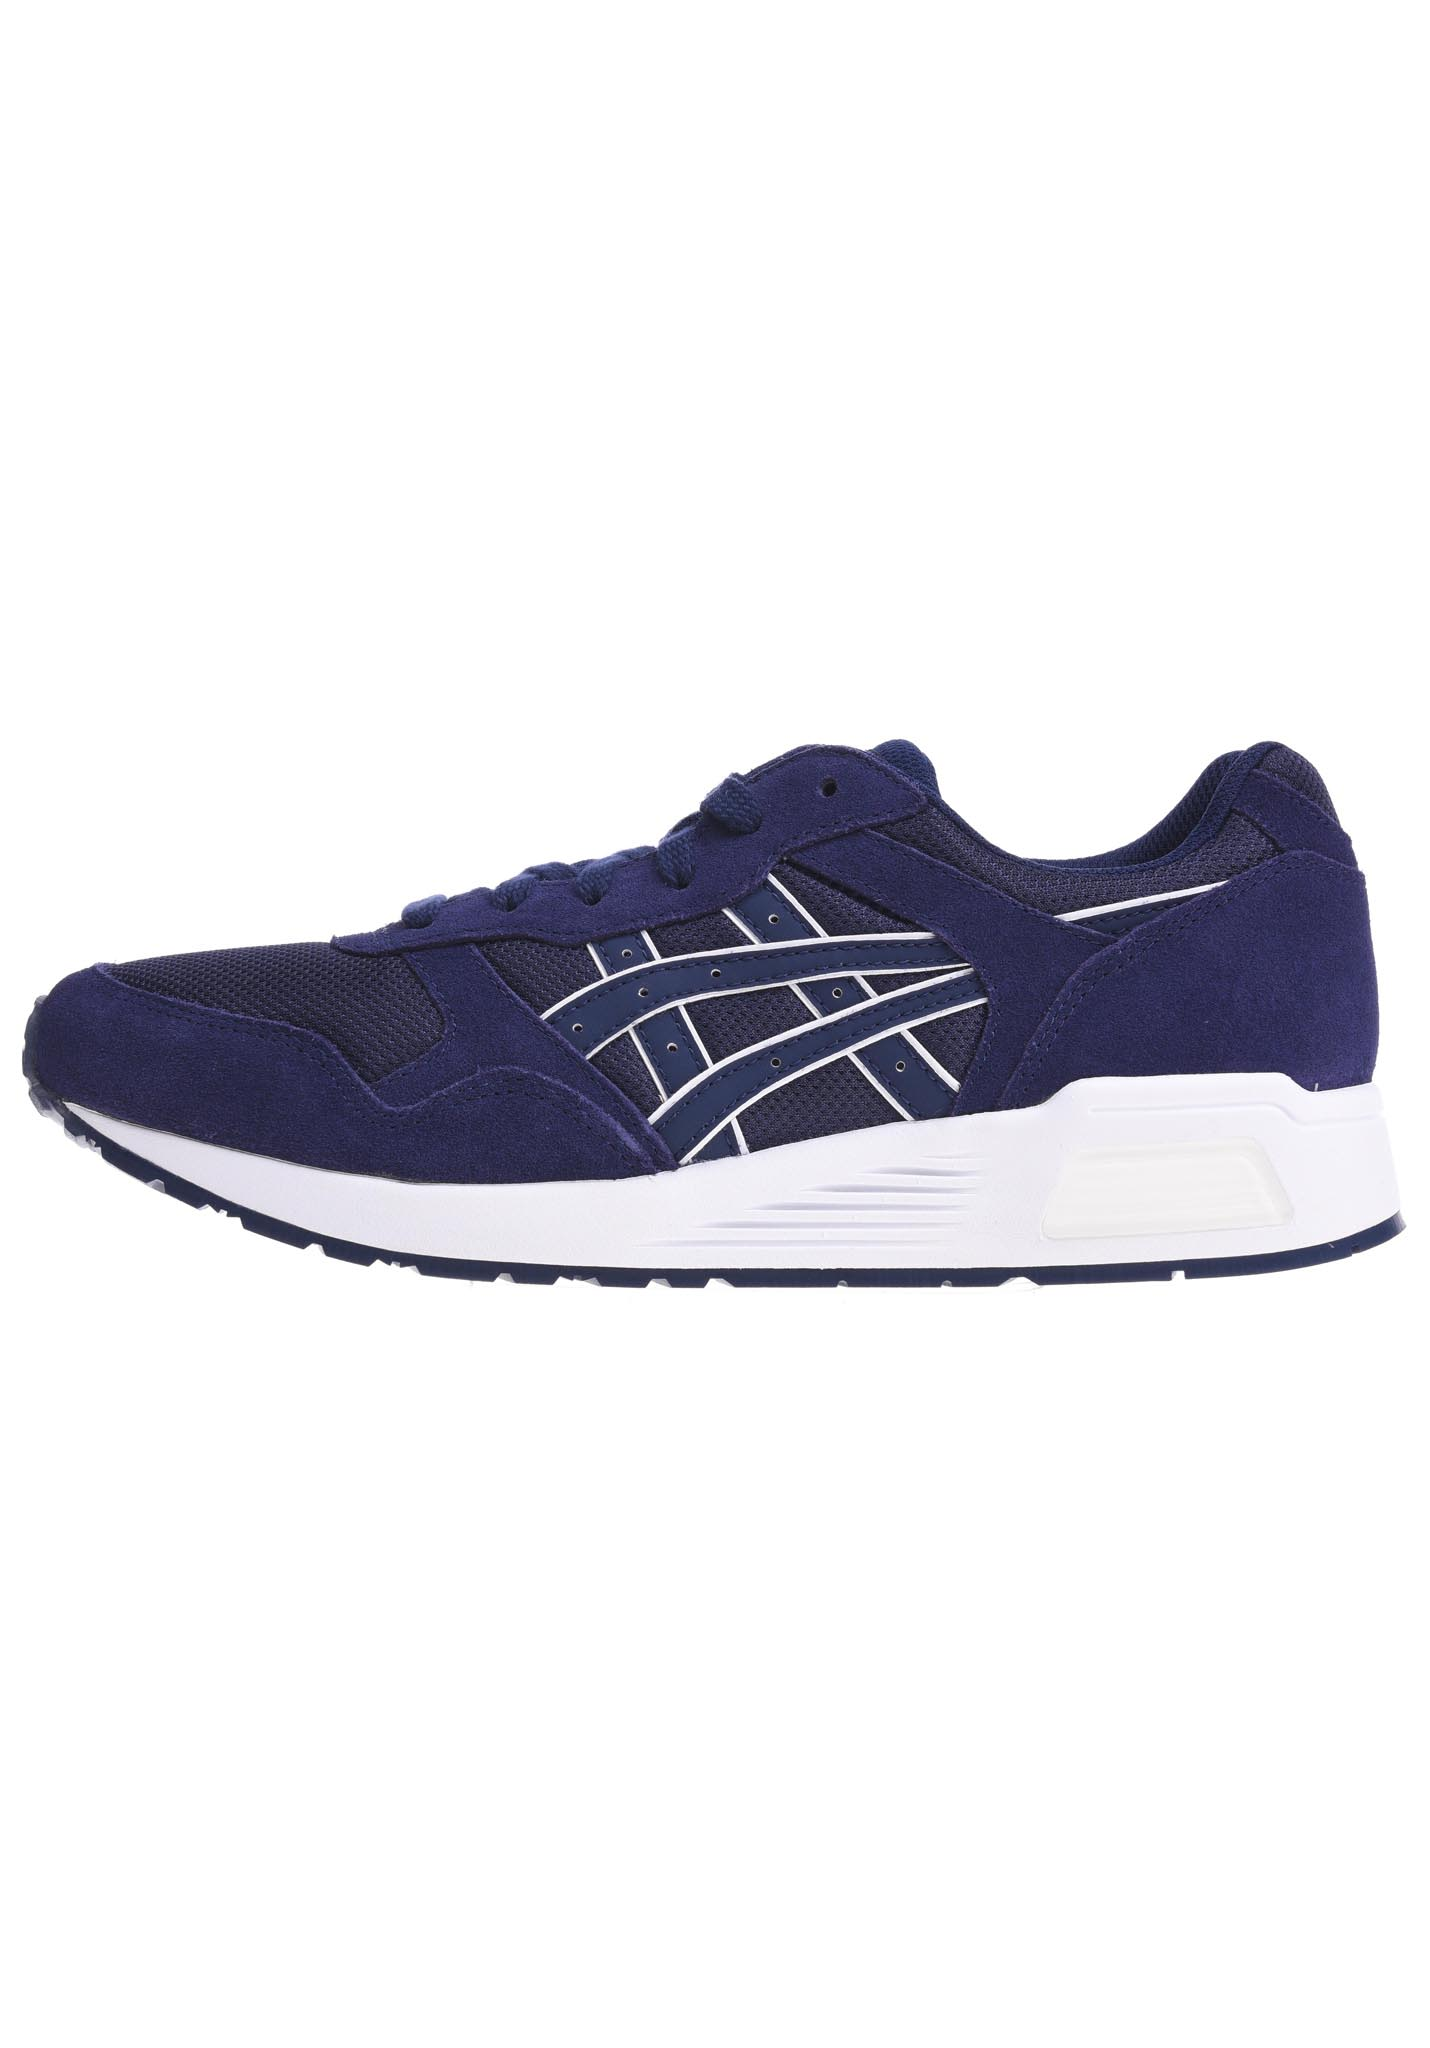 a8609b790bf Asics Tiger Lyte-Trainer - Sneakers for Men - Blue - Planet Sports